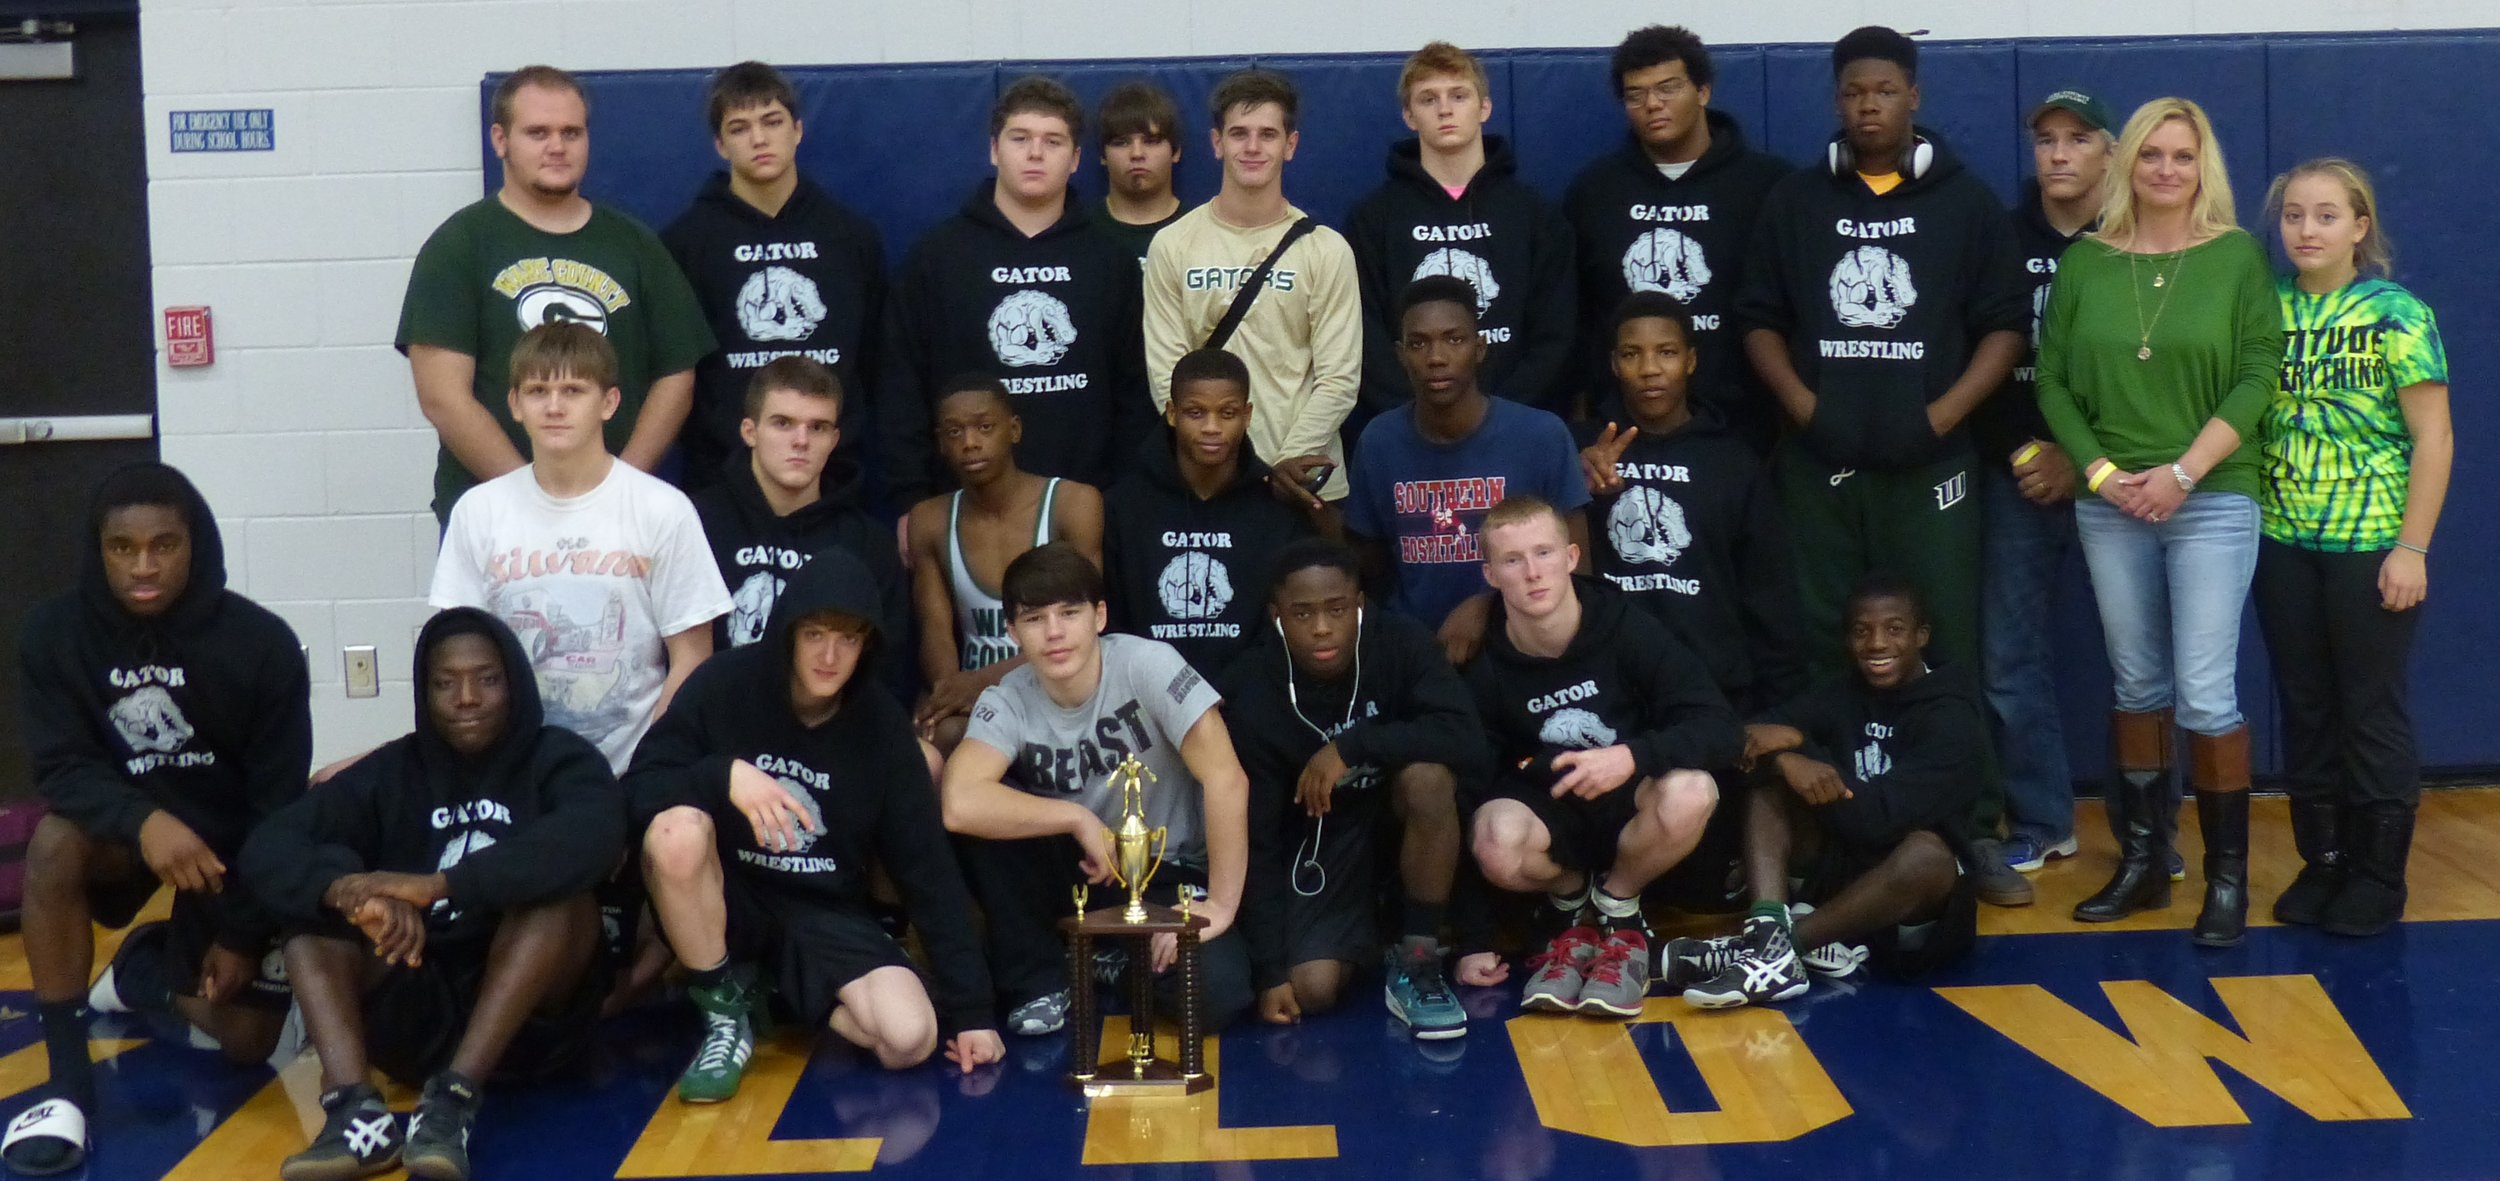 2ND PLACE JEFF DAVIS YELLOW JACKET DUALS